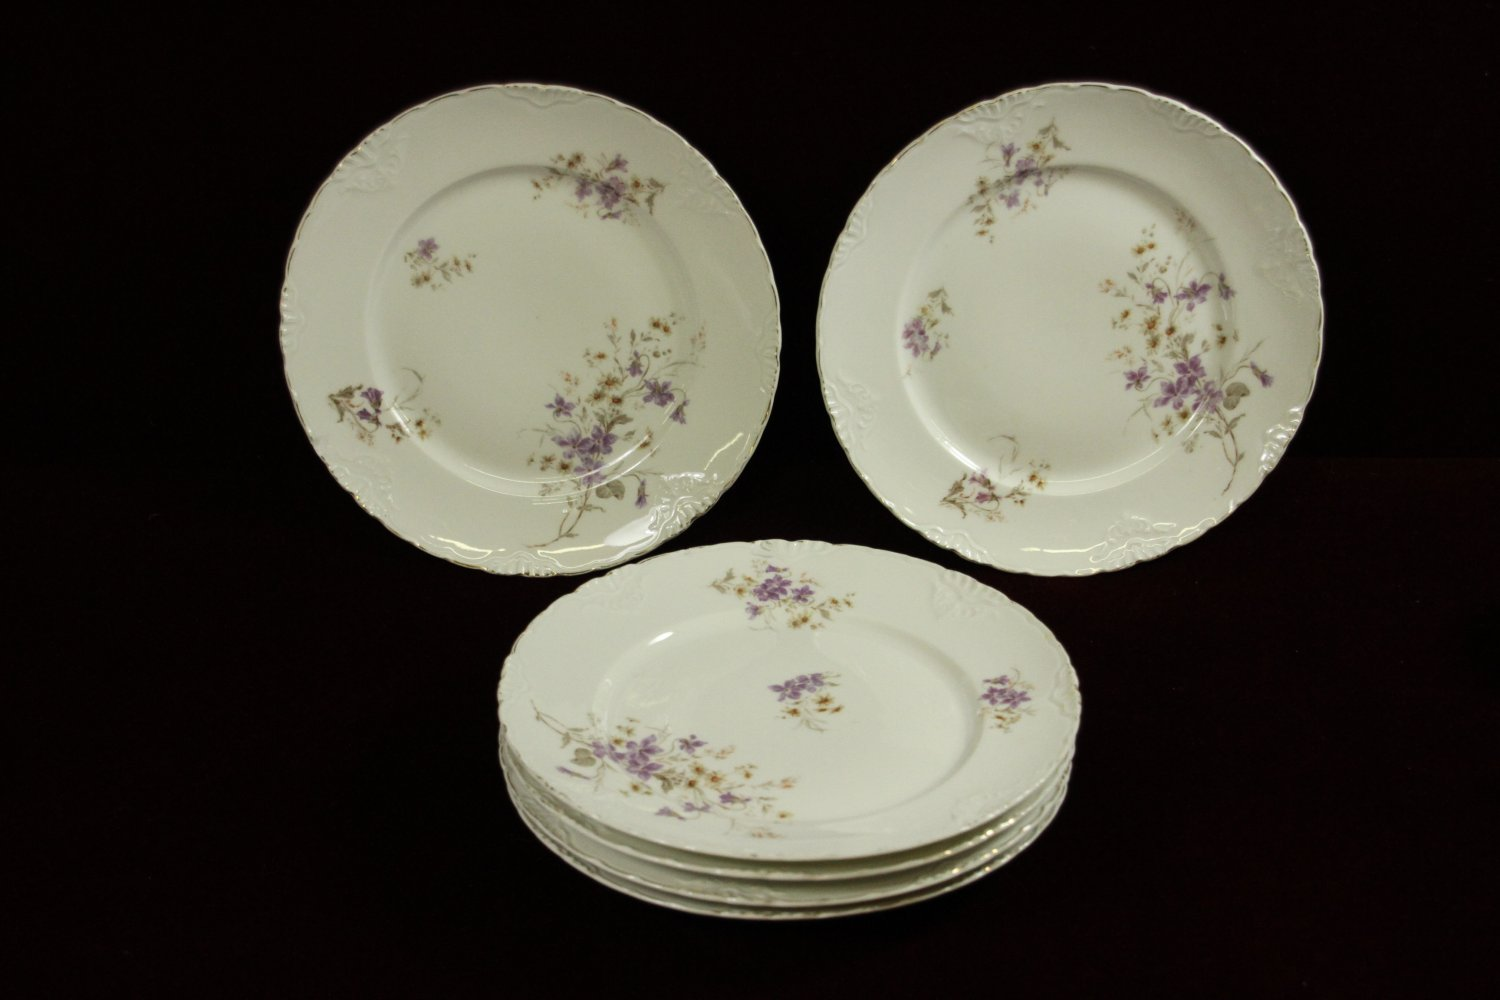 celebrate china dinner plates cluny german rare floral lavender four - China Dinner Plates